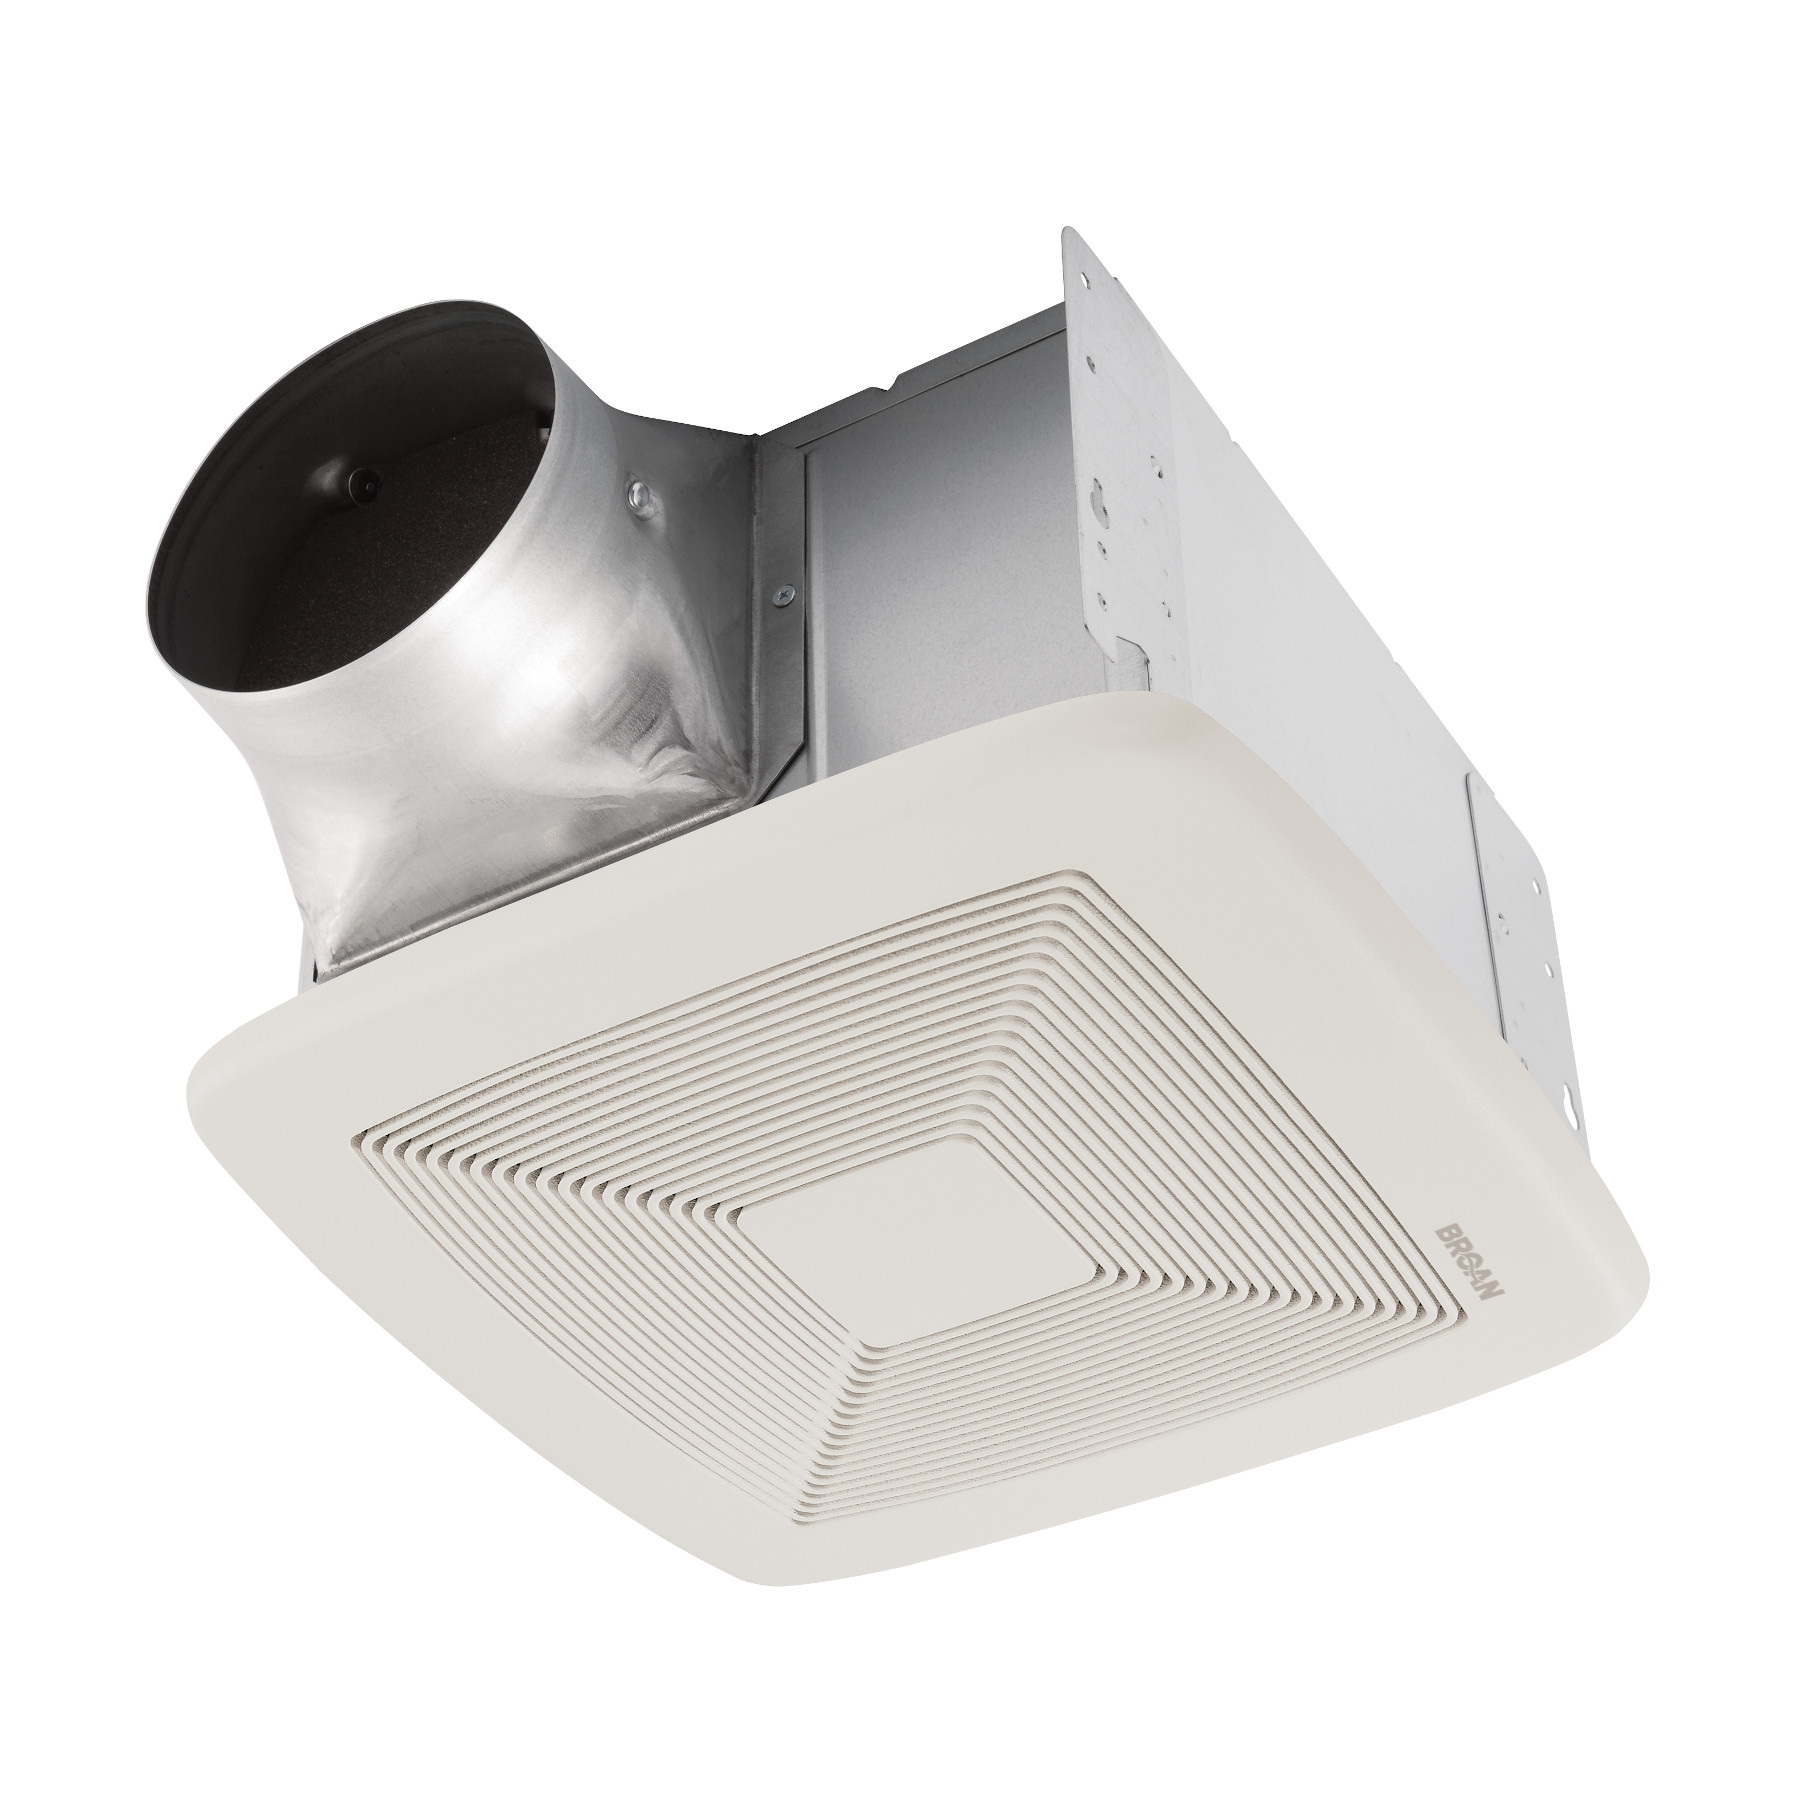 Broan® QTXE Series 150 CFM Ventilation Fan, 1.4 Sones; ENERGY STAR® Certified